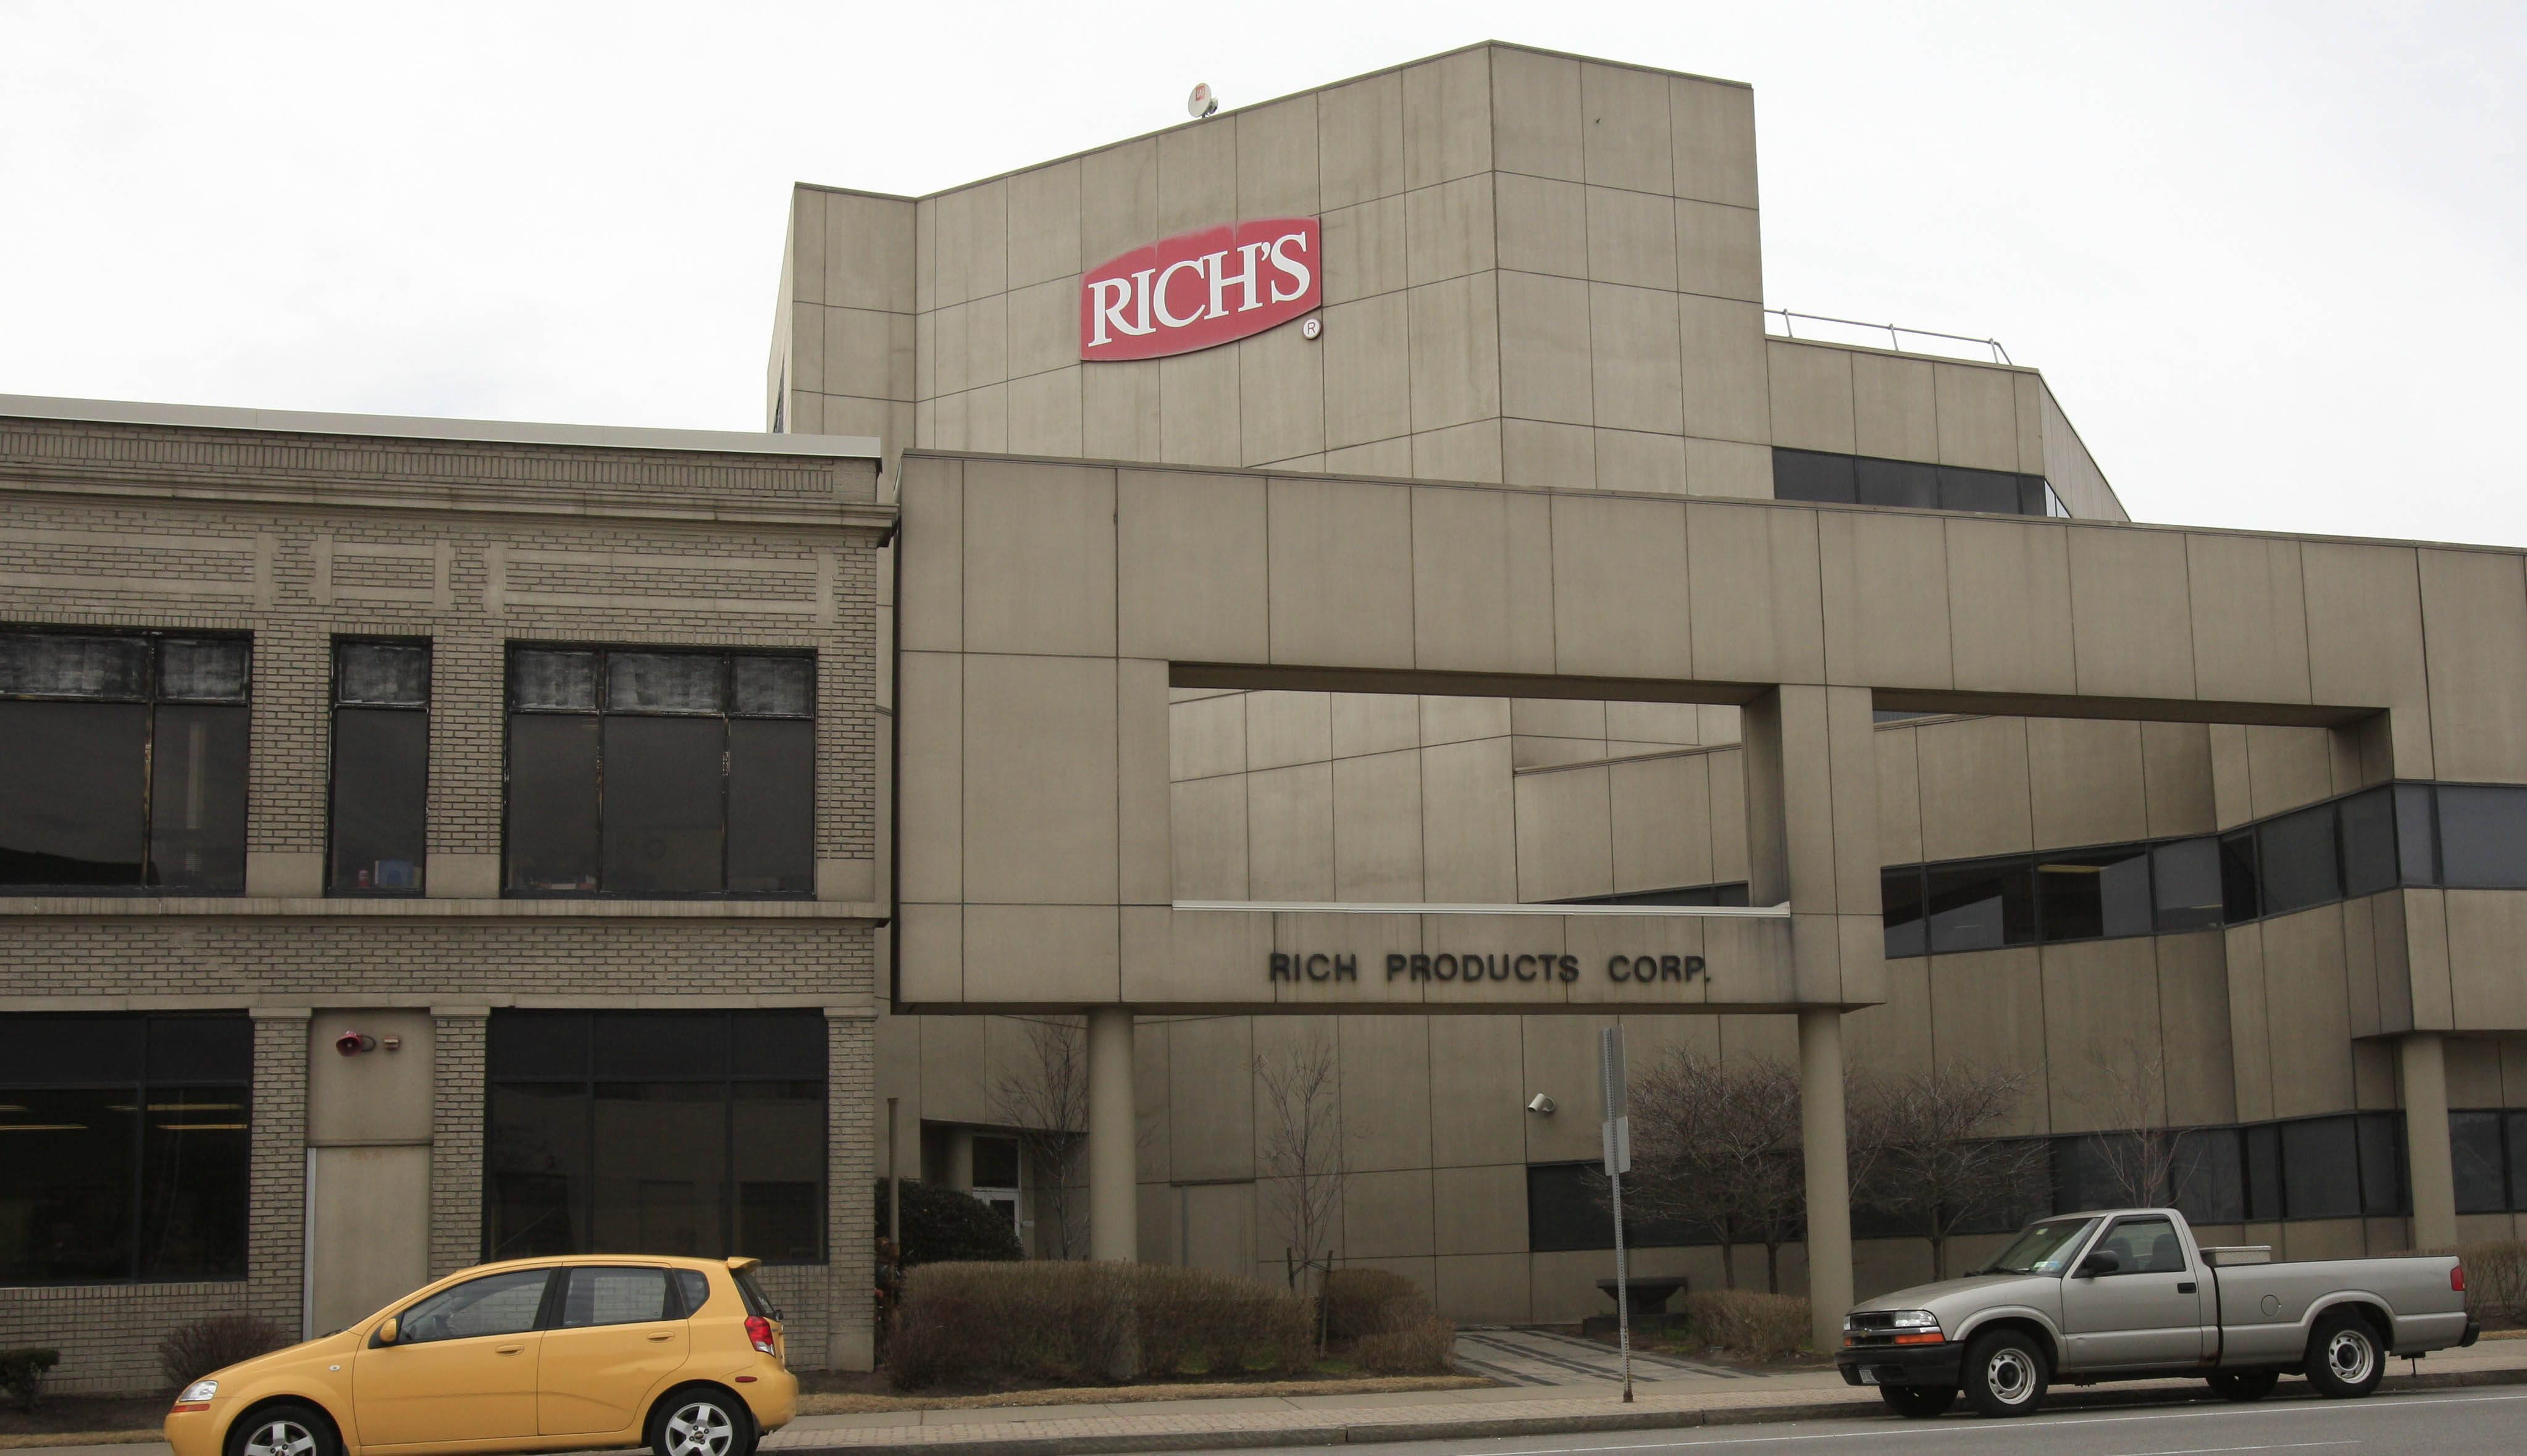 About 20 jobs eliminated at rich products in buffalo the for Fashion jobs hamburg